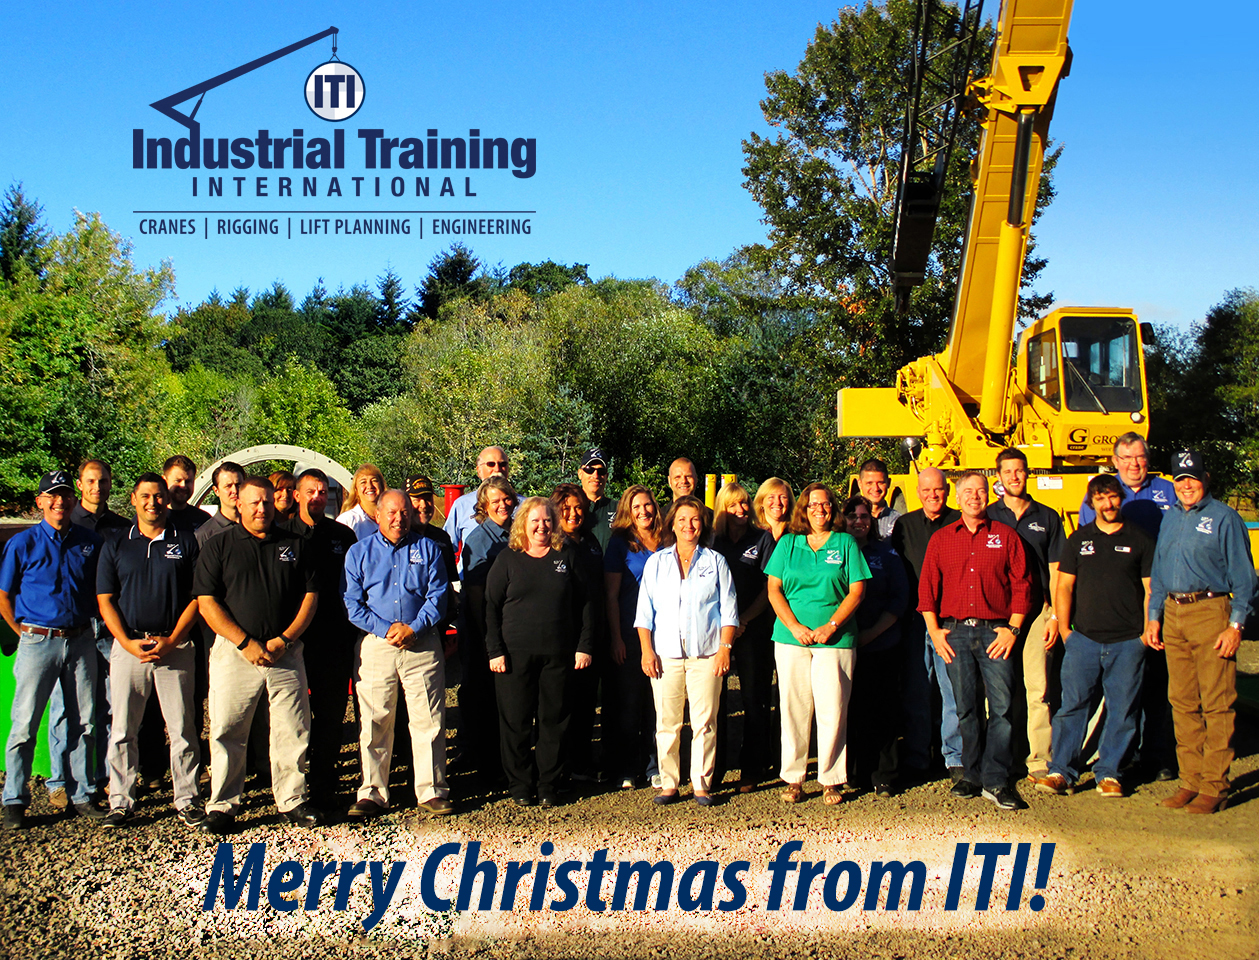 Merry Christmas from ITI!